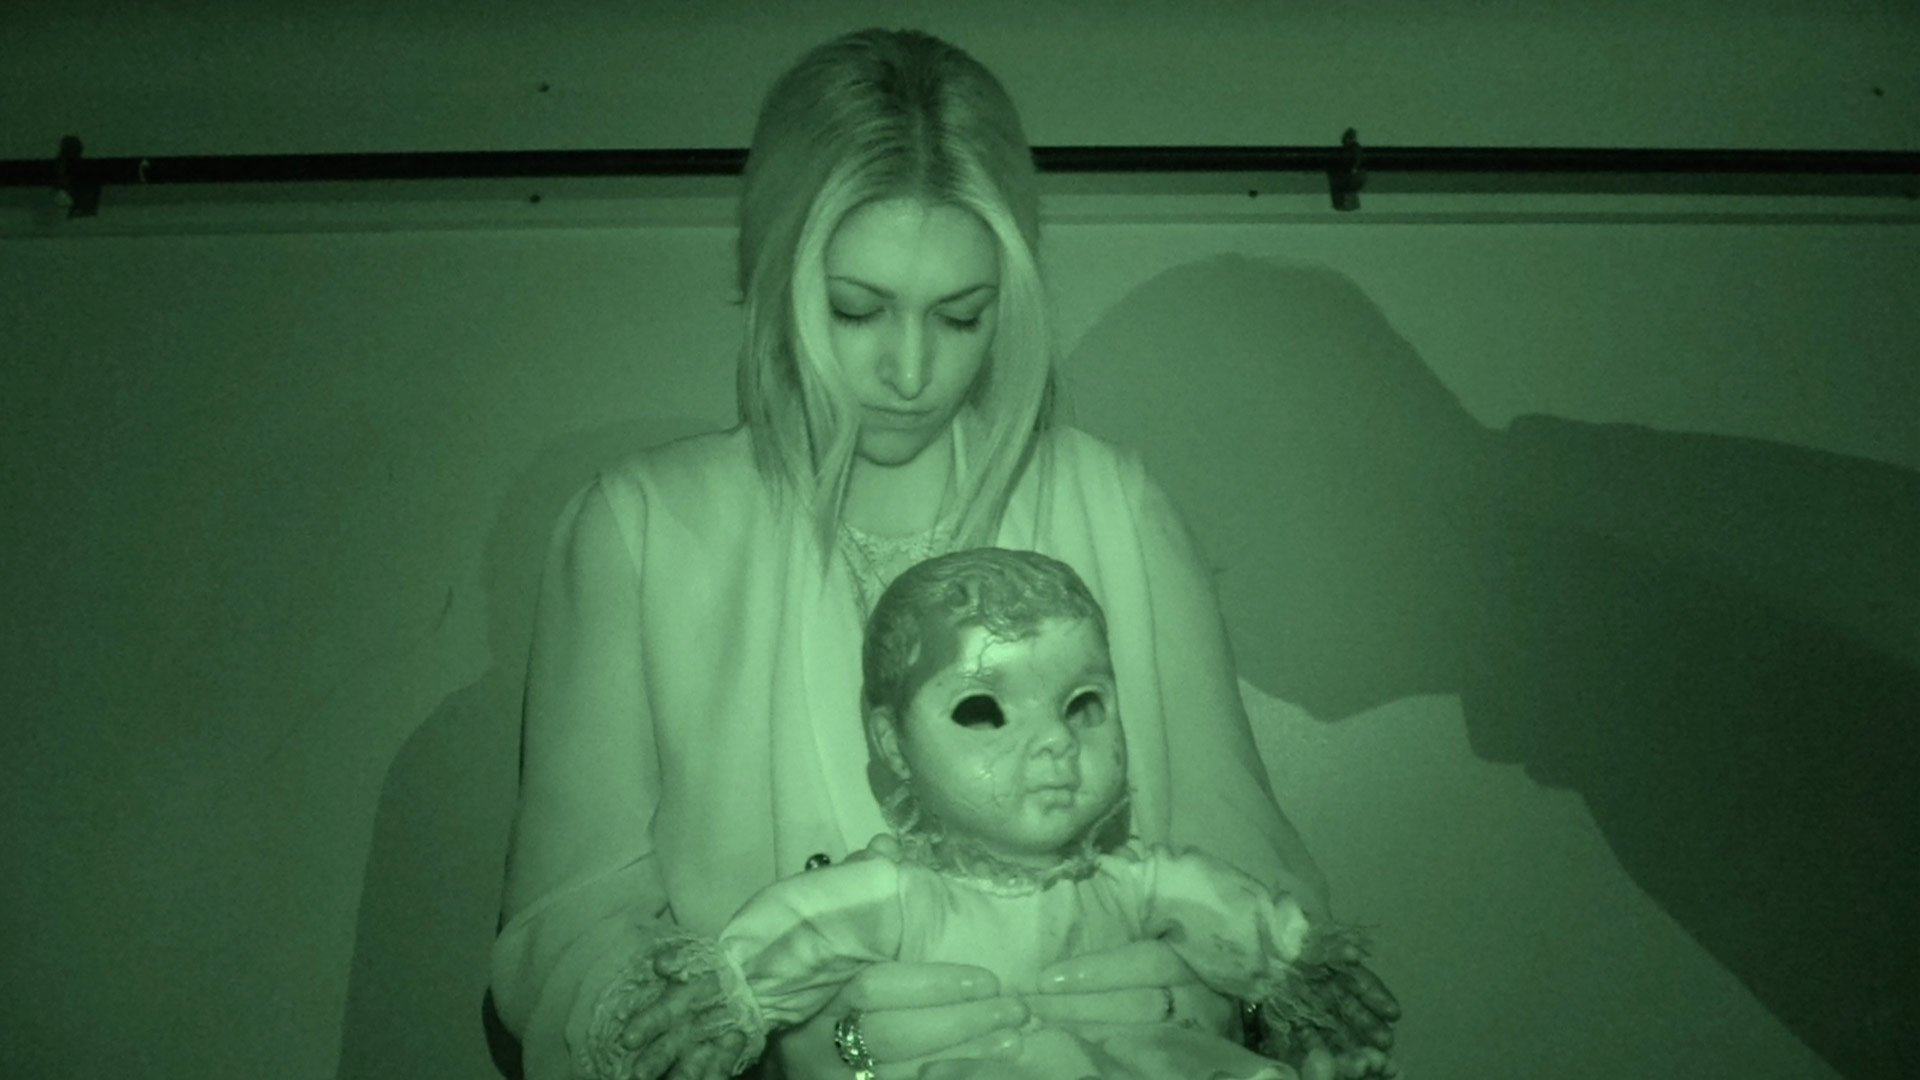 Night vision shot of a giral and doll with ghostly shadows behind them